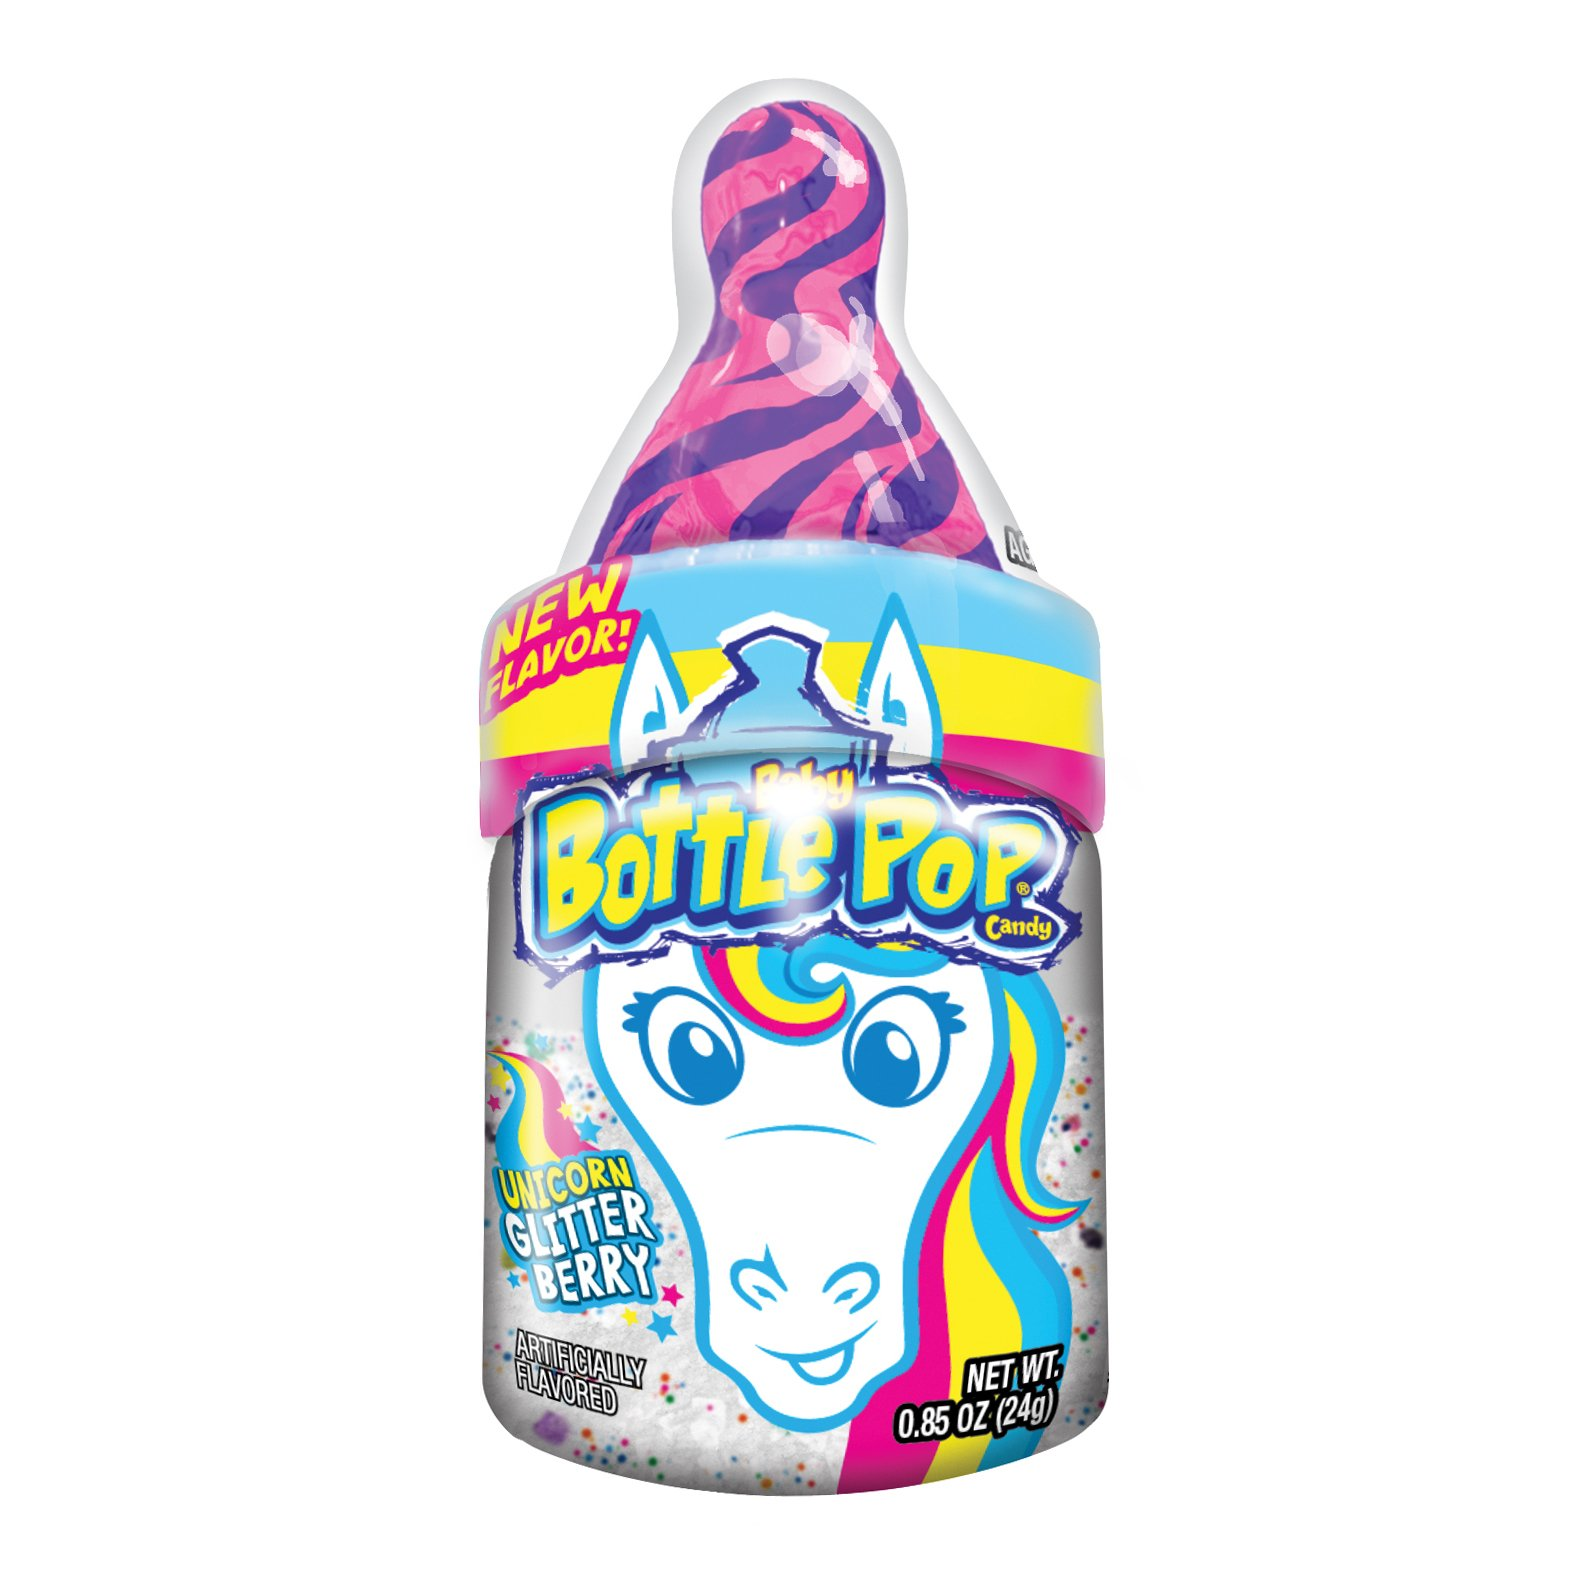 Baby Bottle Pop Blue Raspberry Candy - Shop Candy at HEB